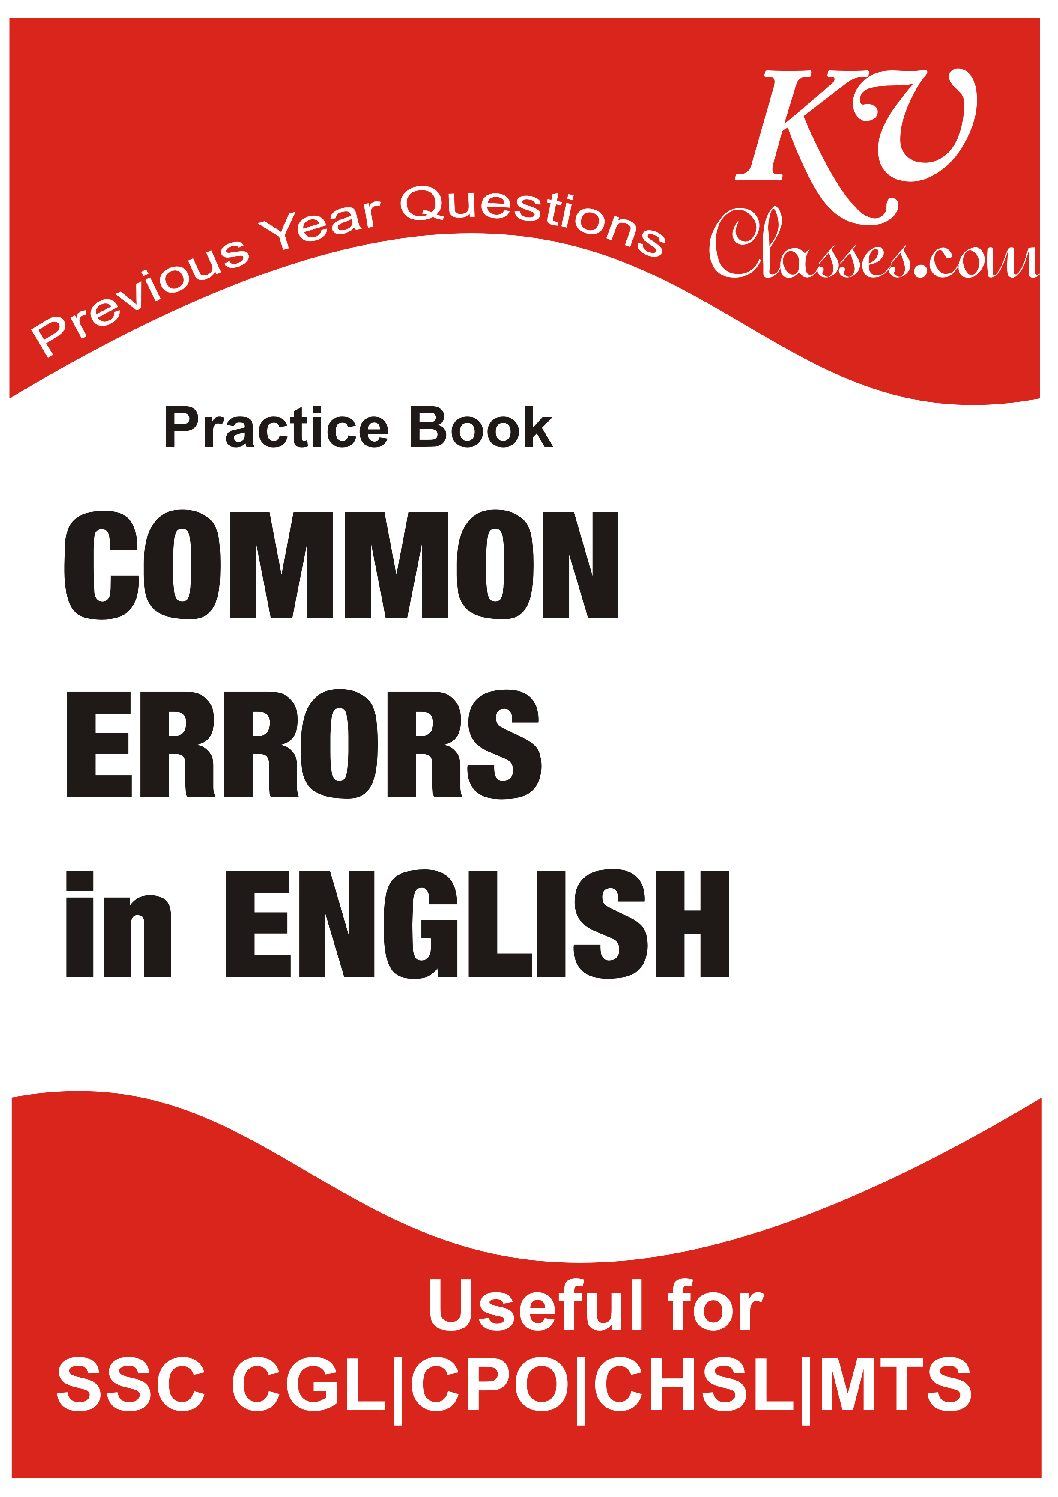 SSC PREVIOUS COMPLETE COMMON ERROR in PDF Download